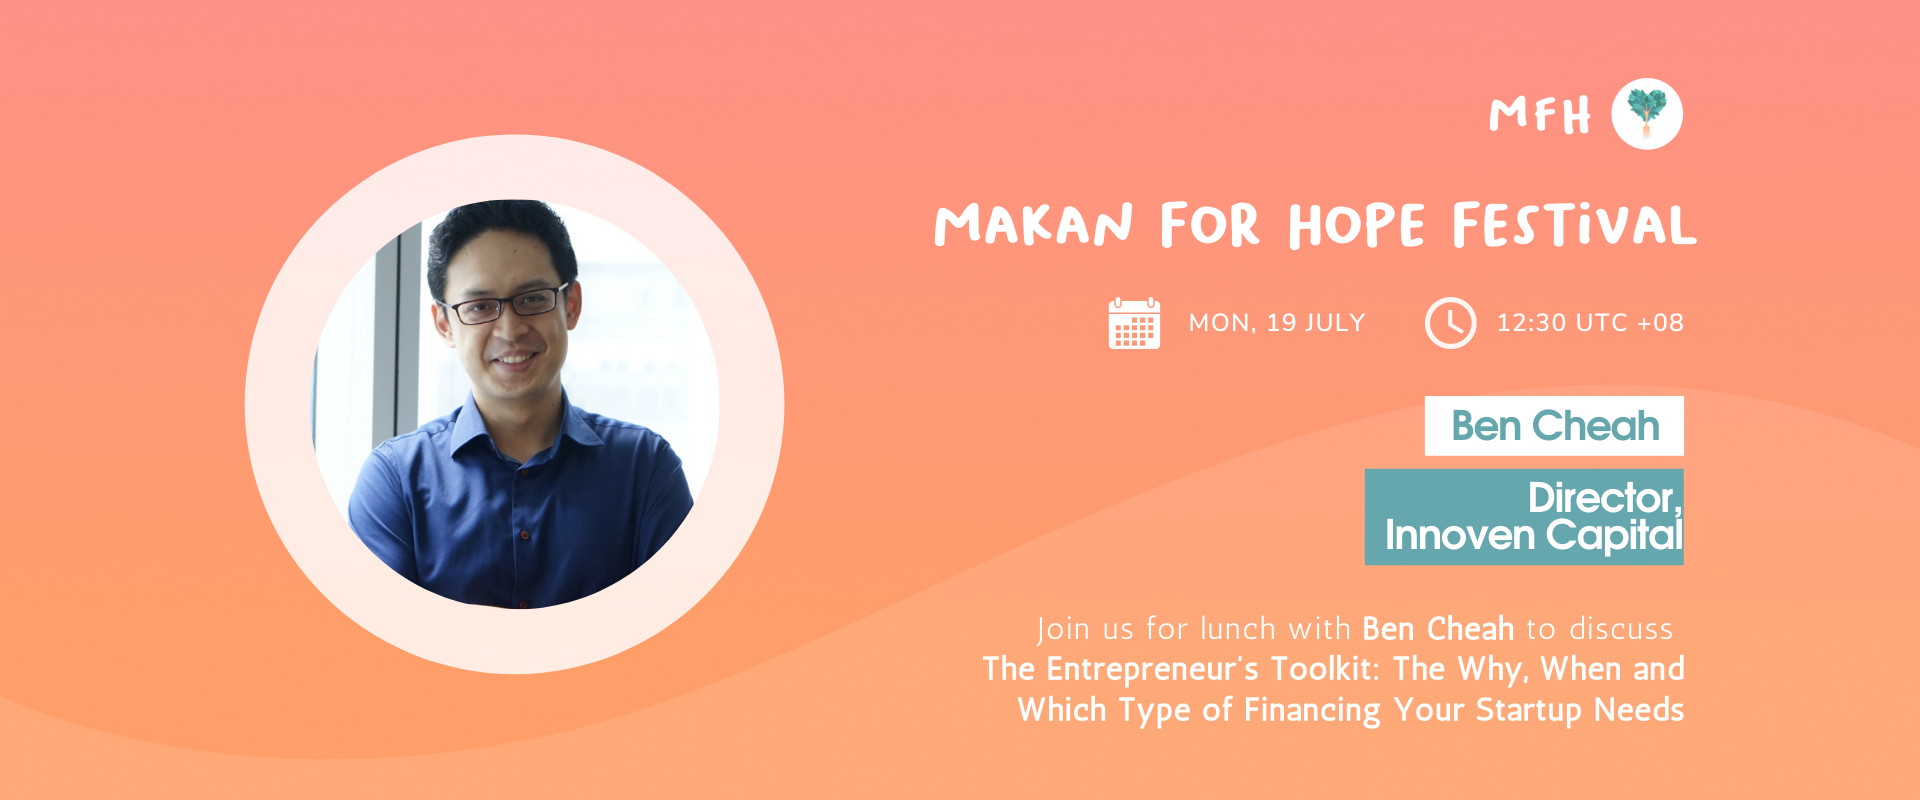 Ben Cheah - The Entrepreneur's Toolkit: The Why, When and Which Type of Financing Your Startup Needs